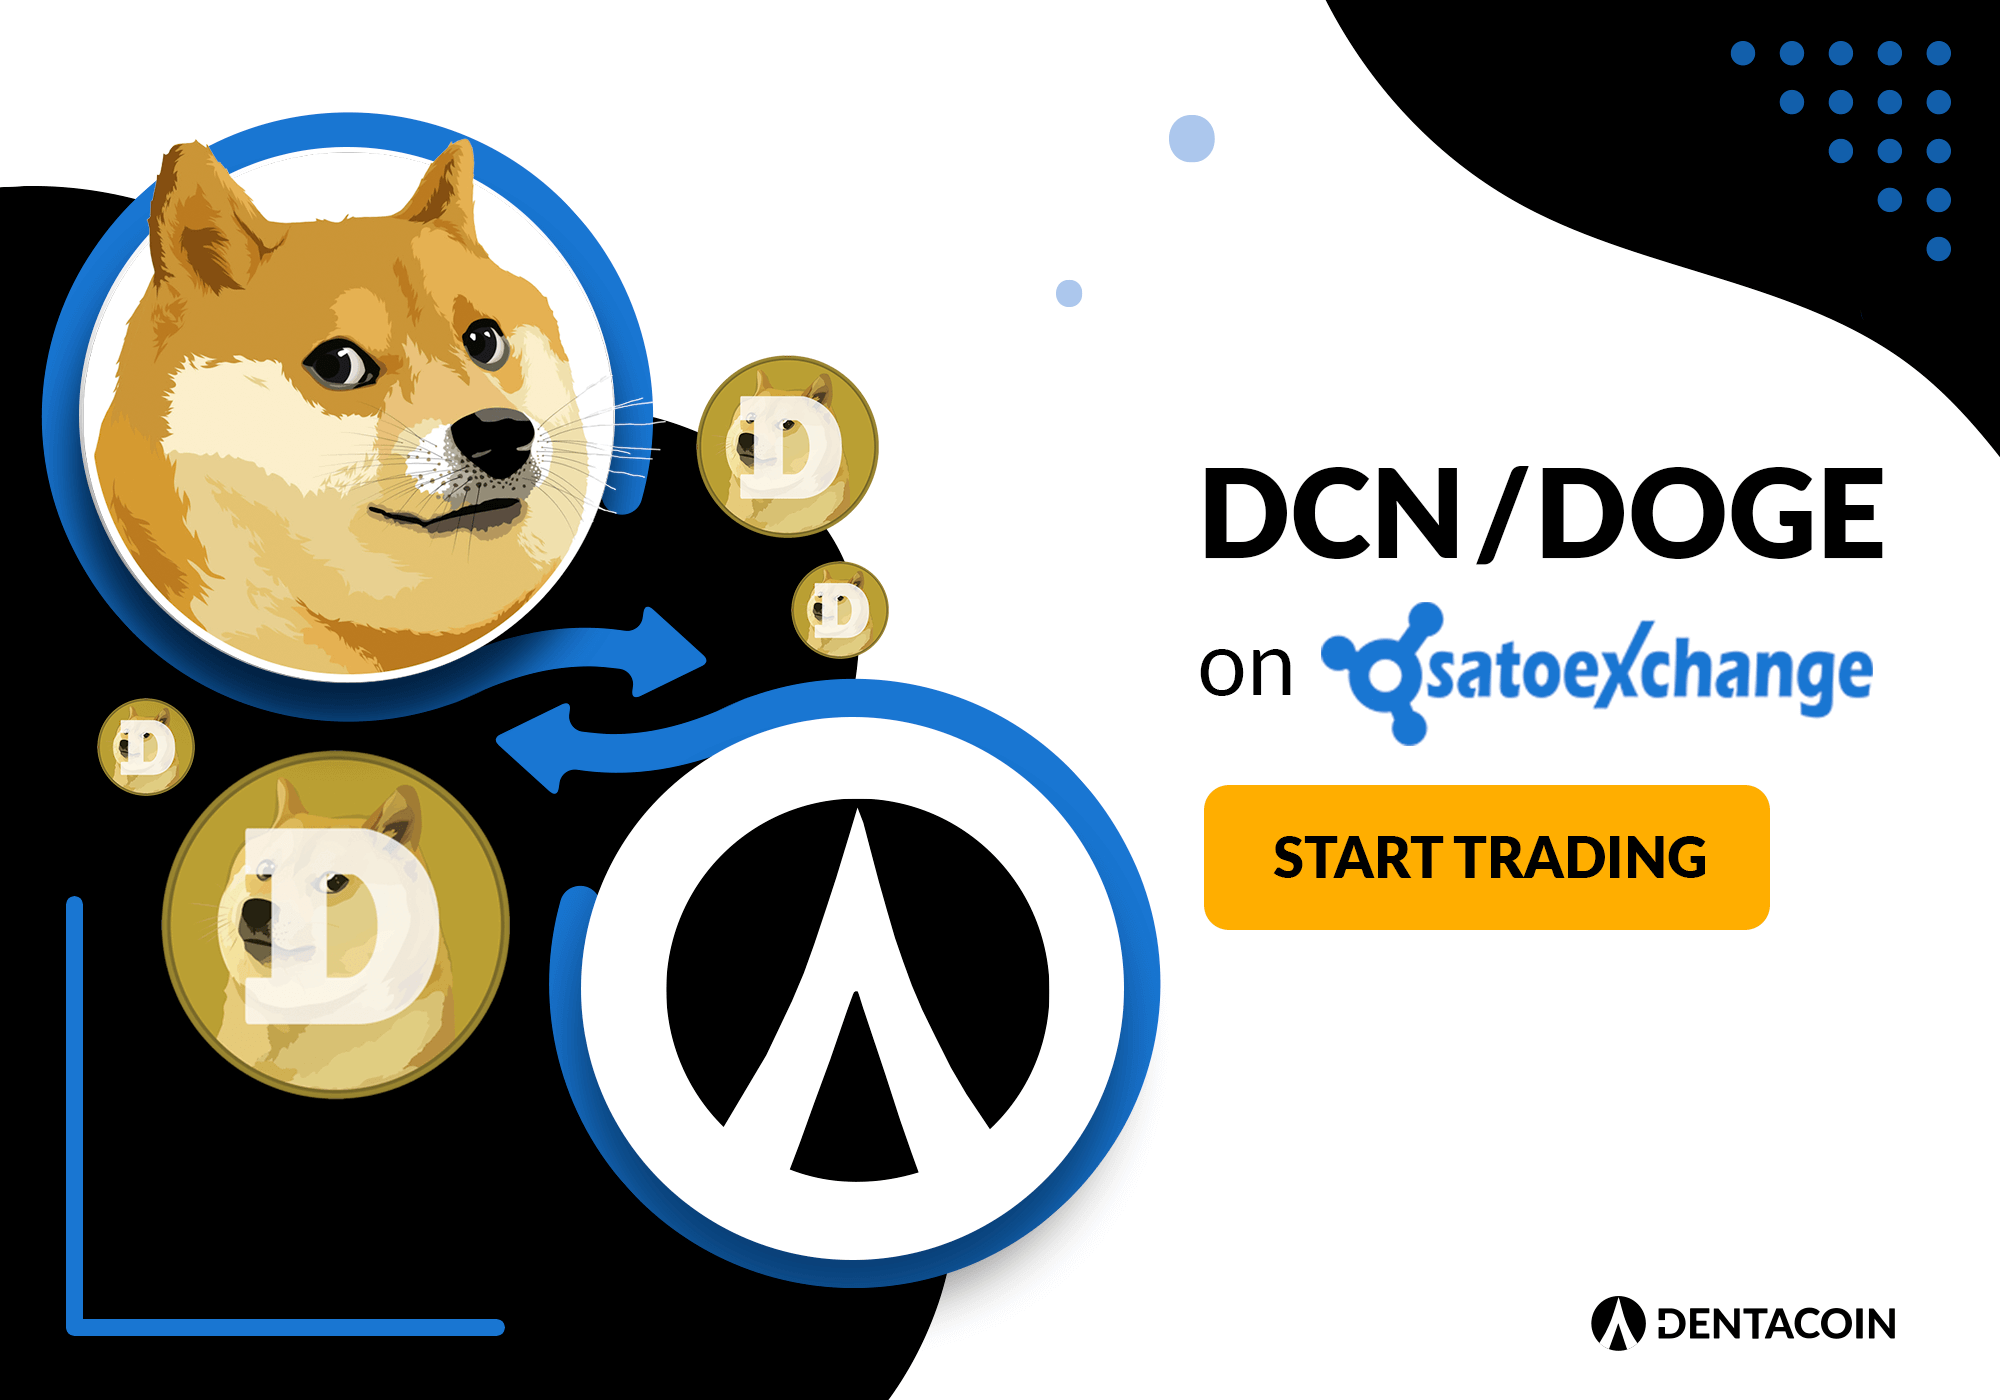 Sato exchange doge2